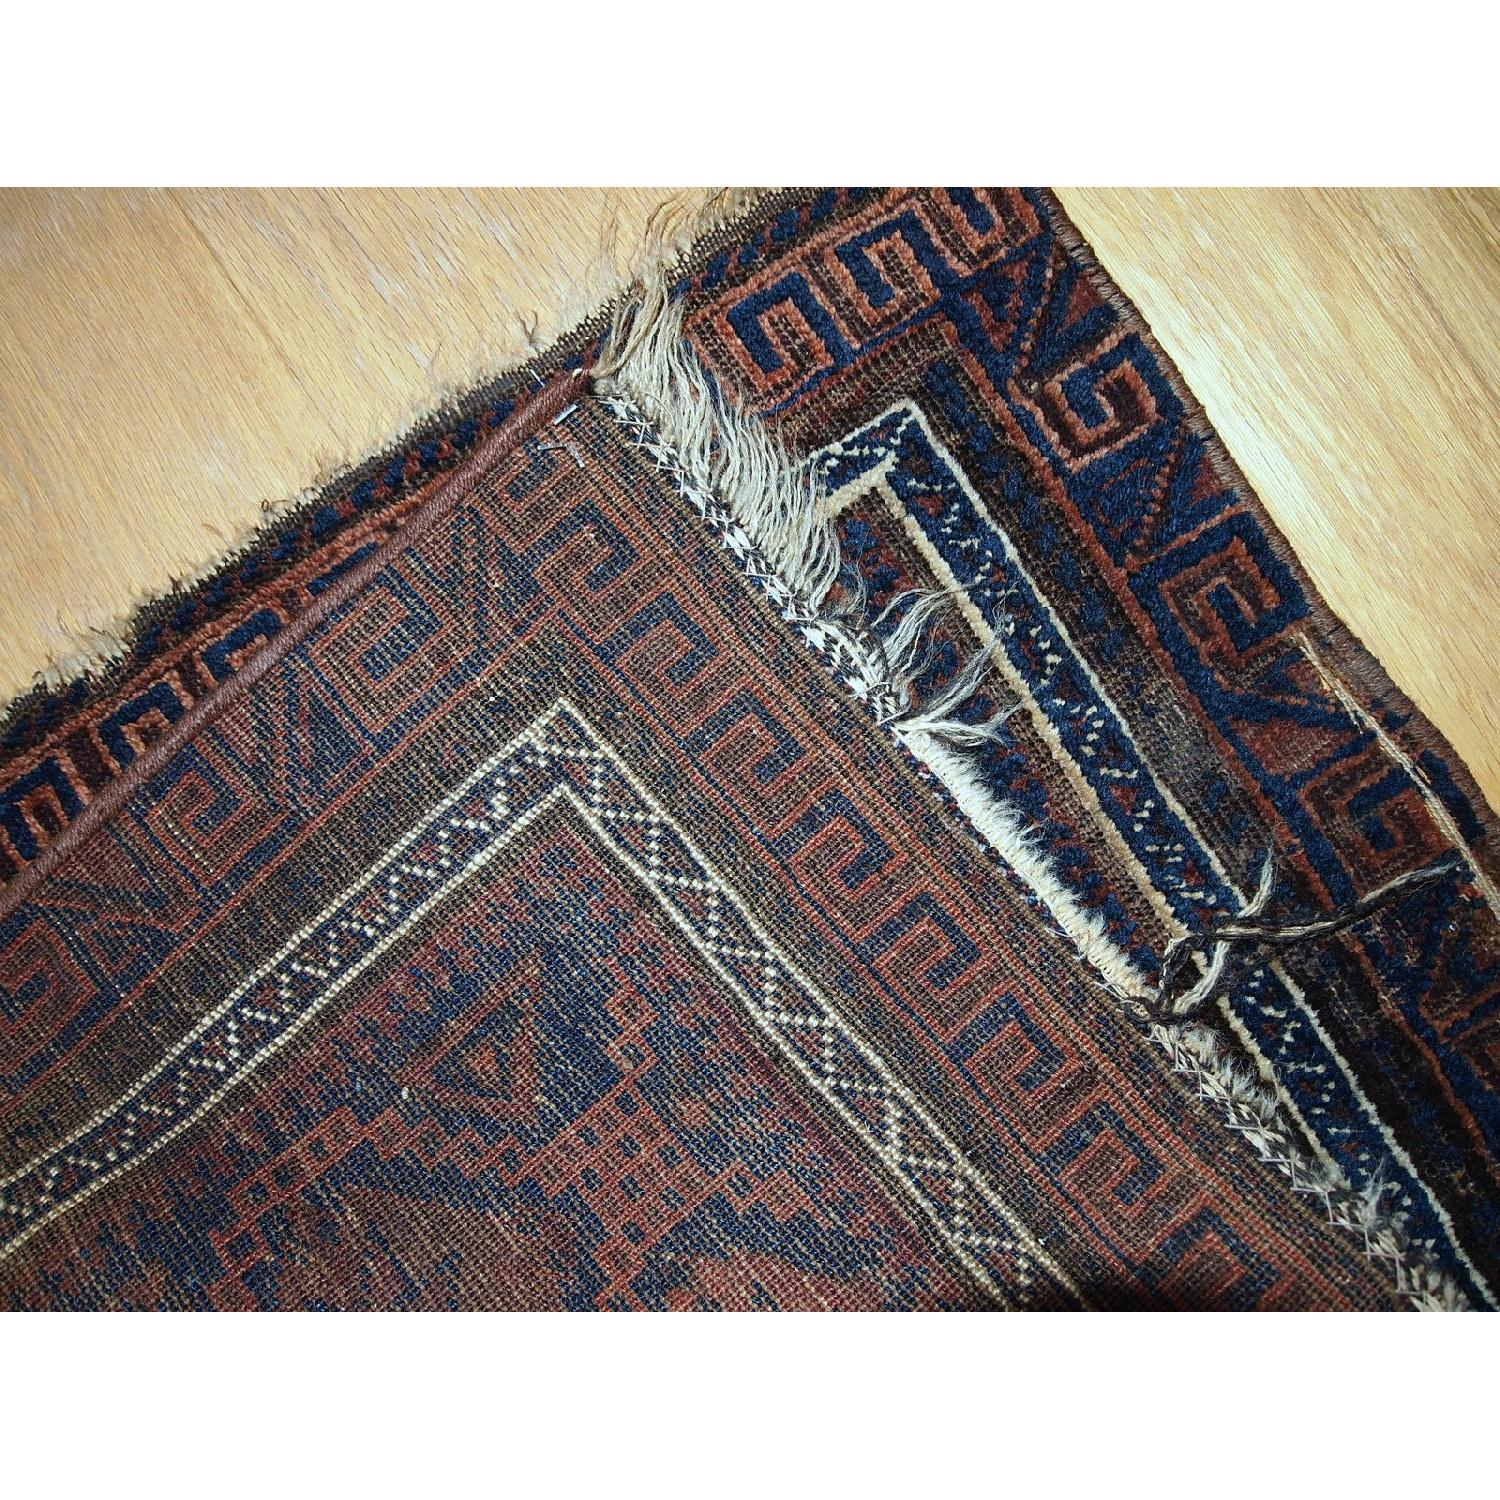 Antique Handmade Collectible Afghan Baluch Bag Face Rug-2